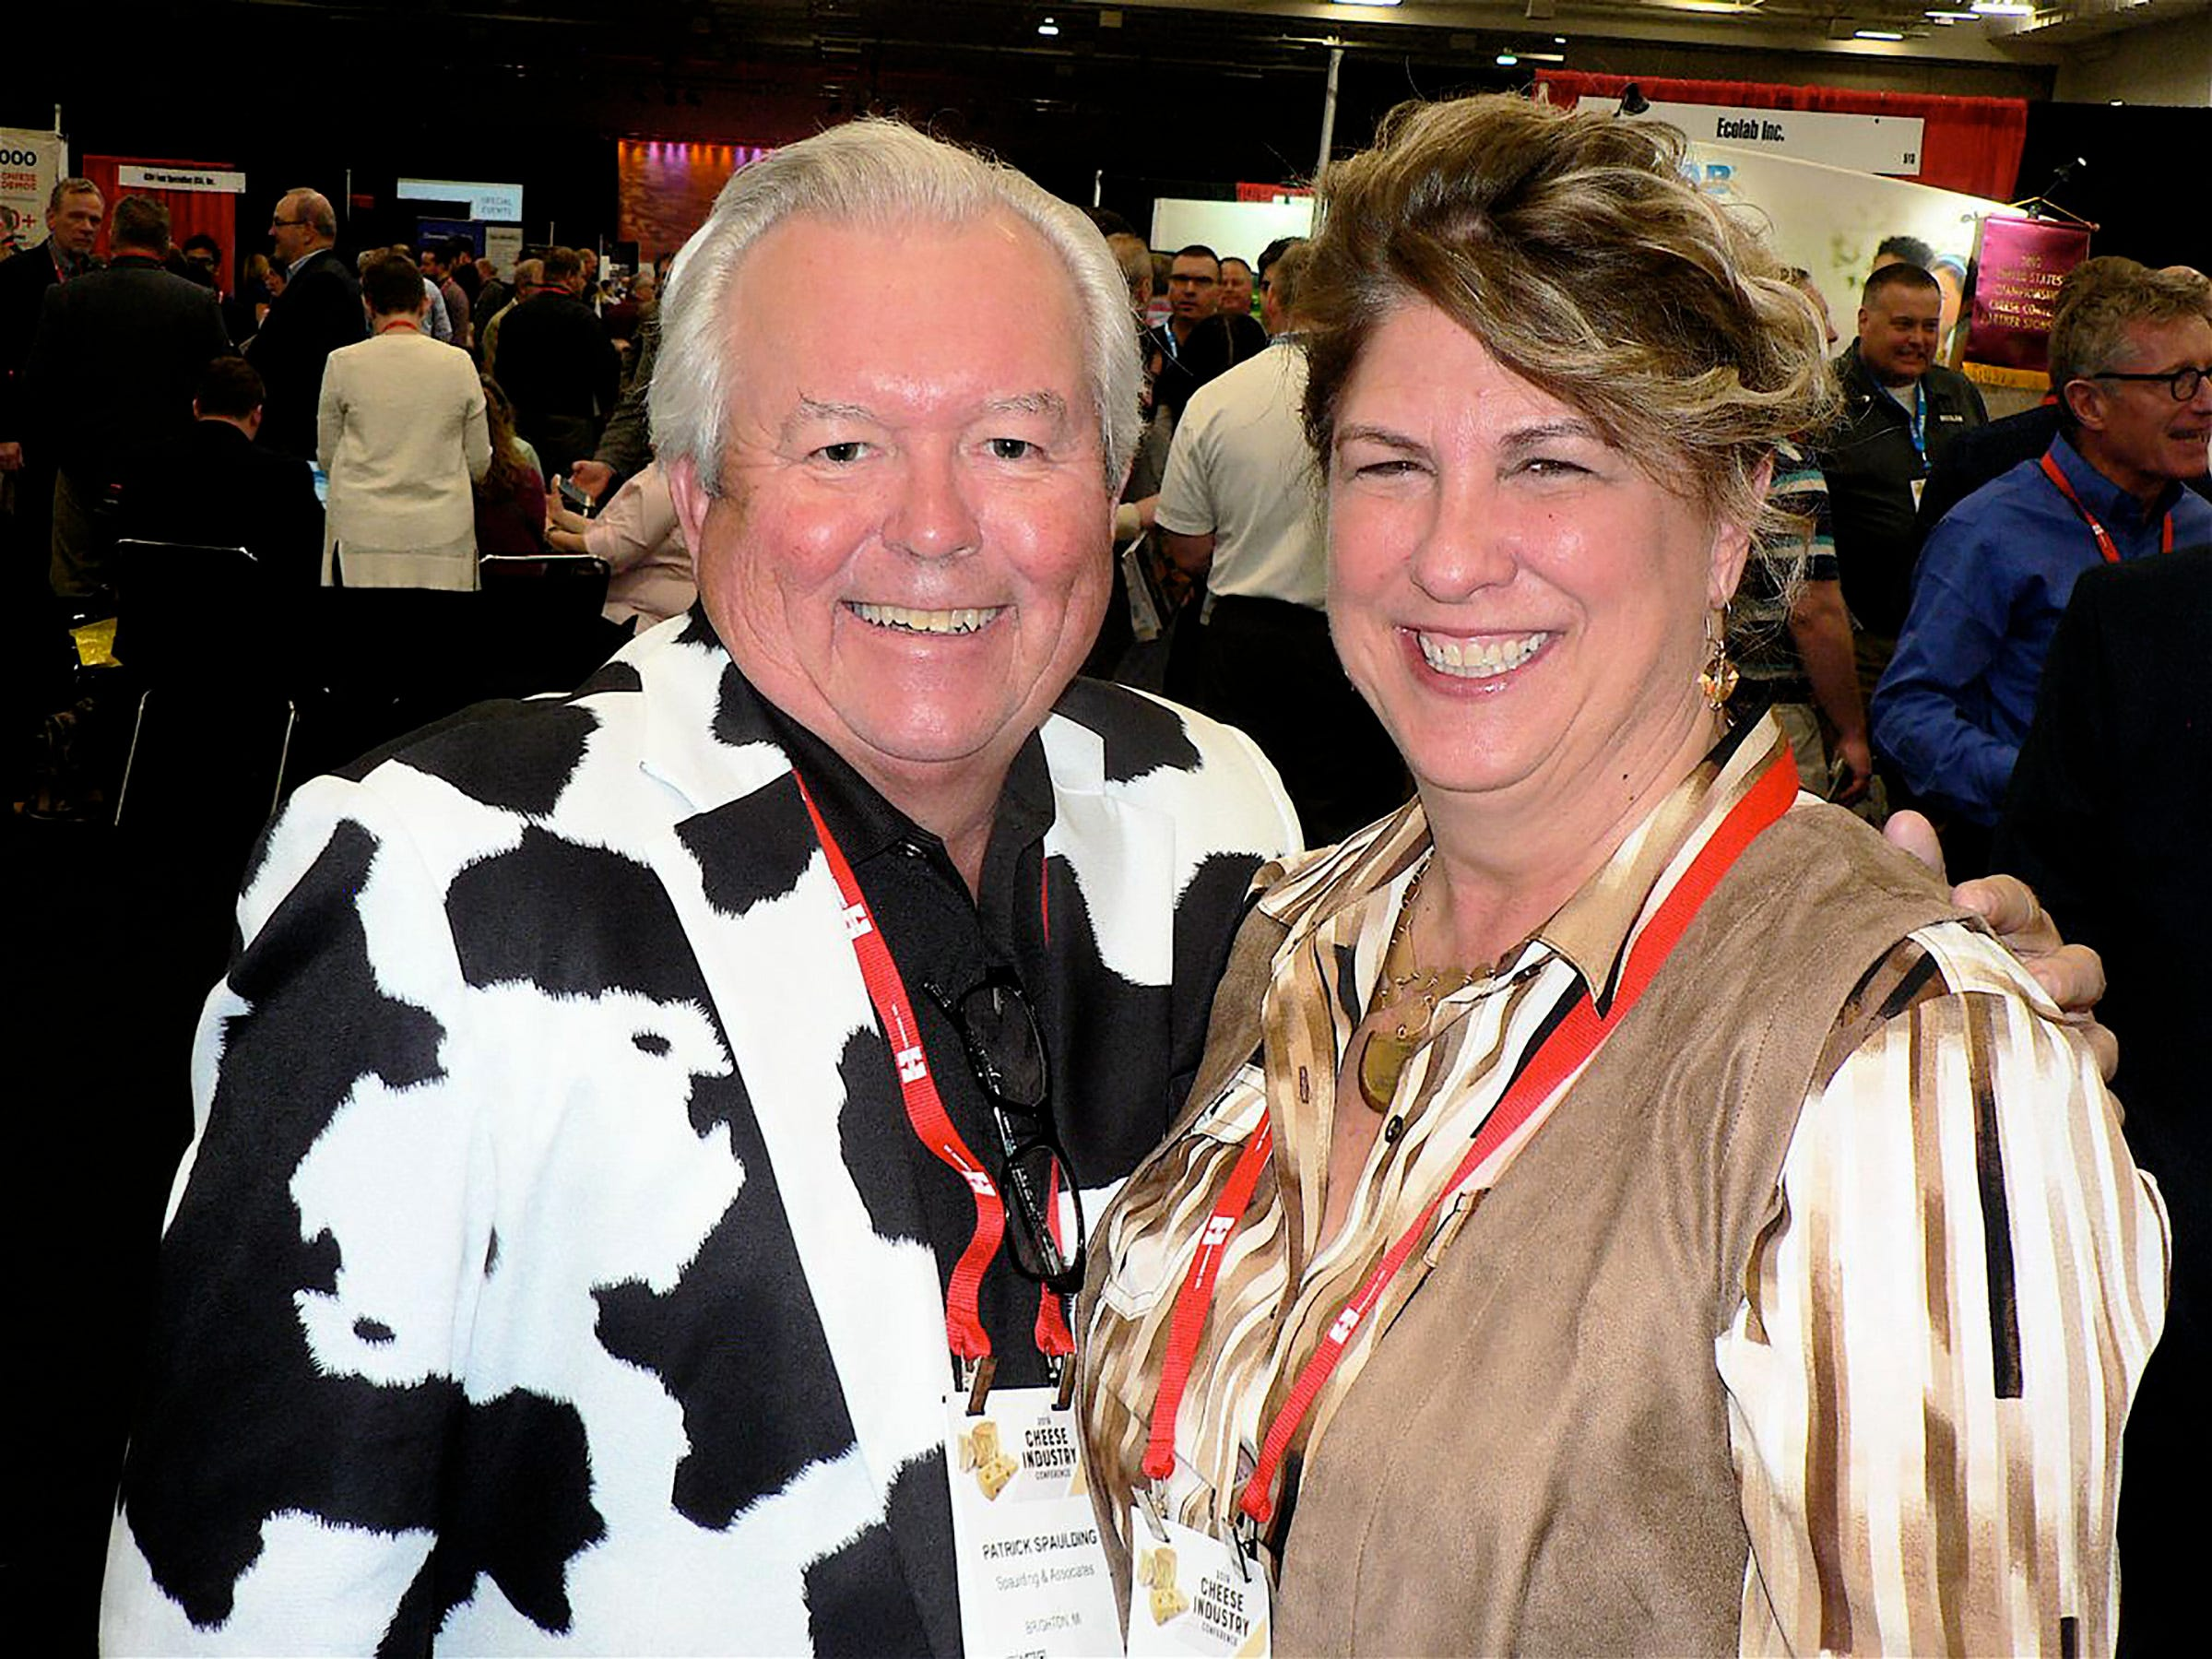 There aren't many Holstein coats being worn, Patrick Spaulding. a cheese buyer has one. He talks with Shirley Knox of Maple Leaf Cheese, Monroe.